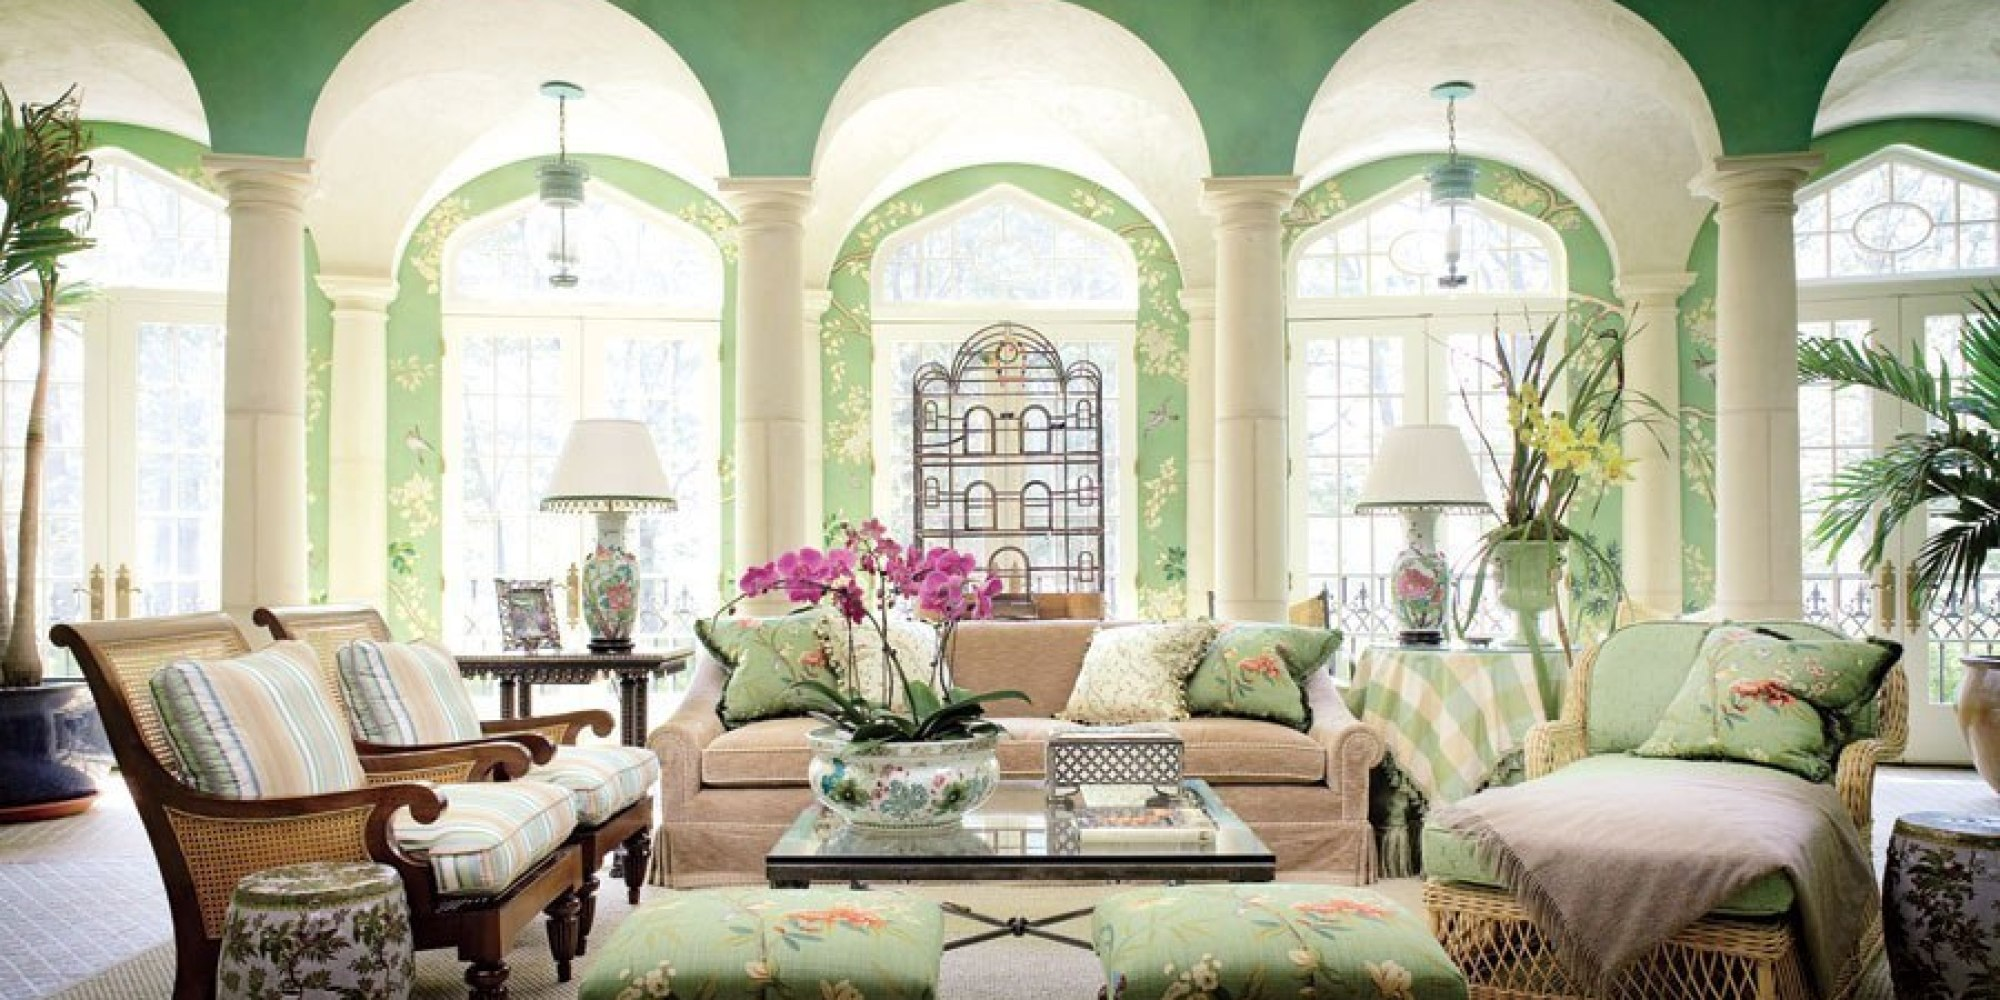 6 Amazing Home Renovations You Have To See To Believe (PHOTOS ...